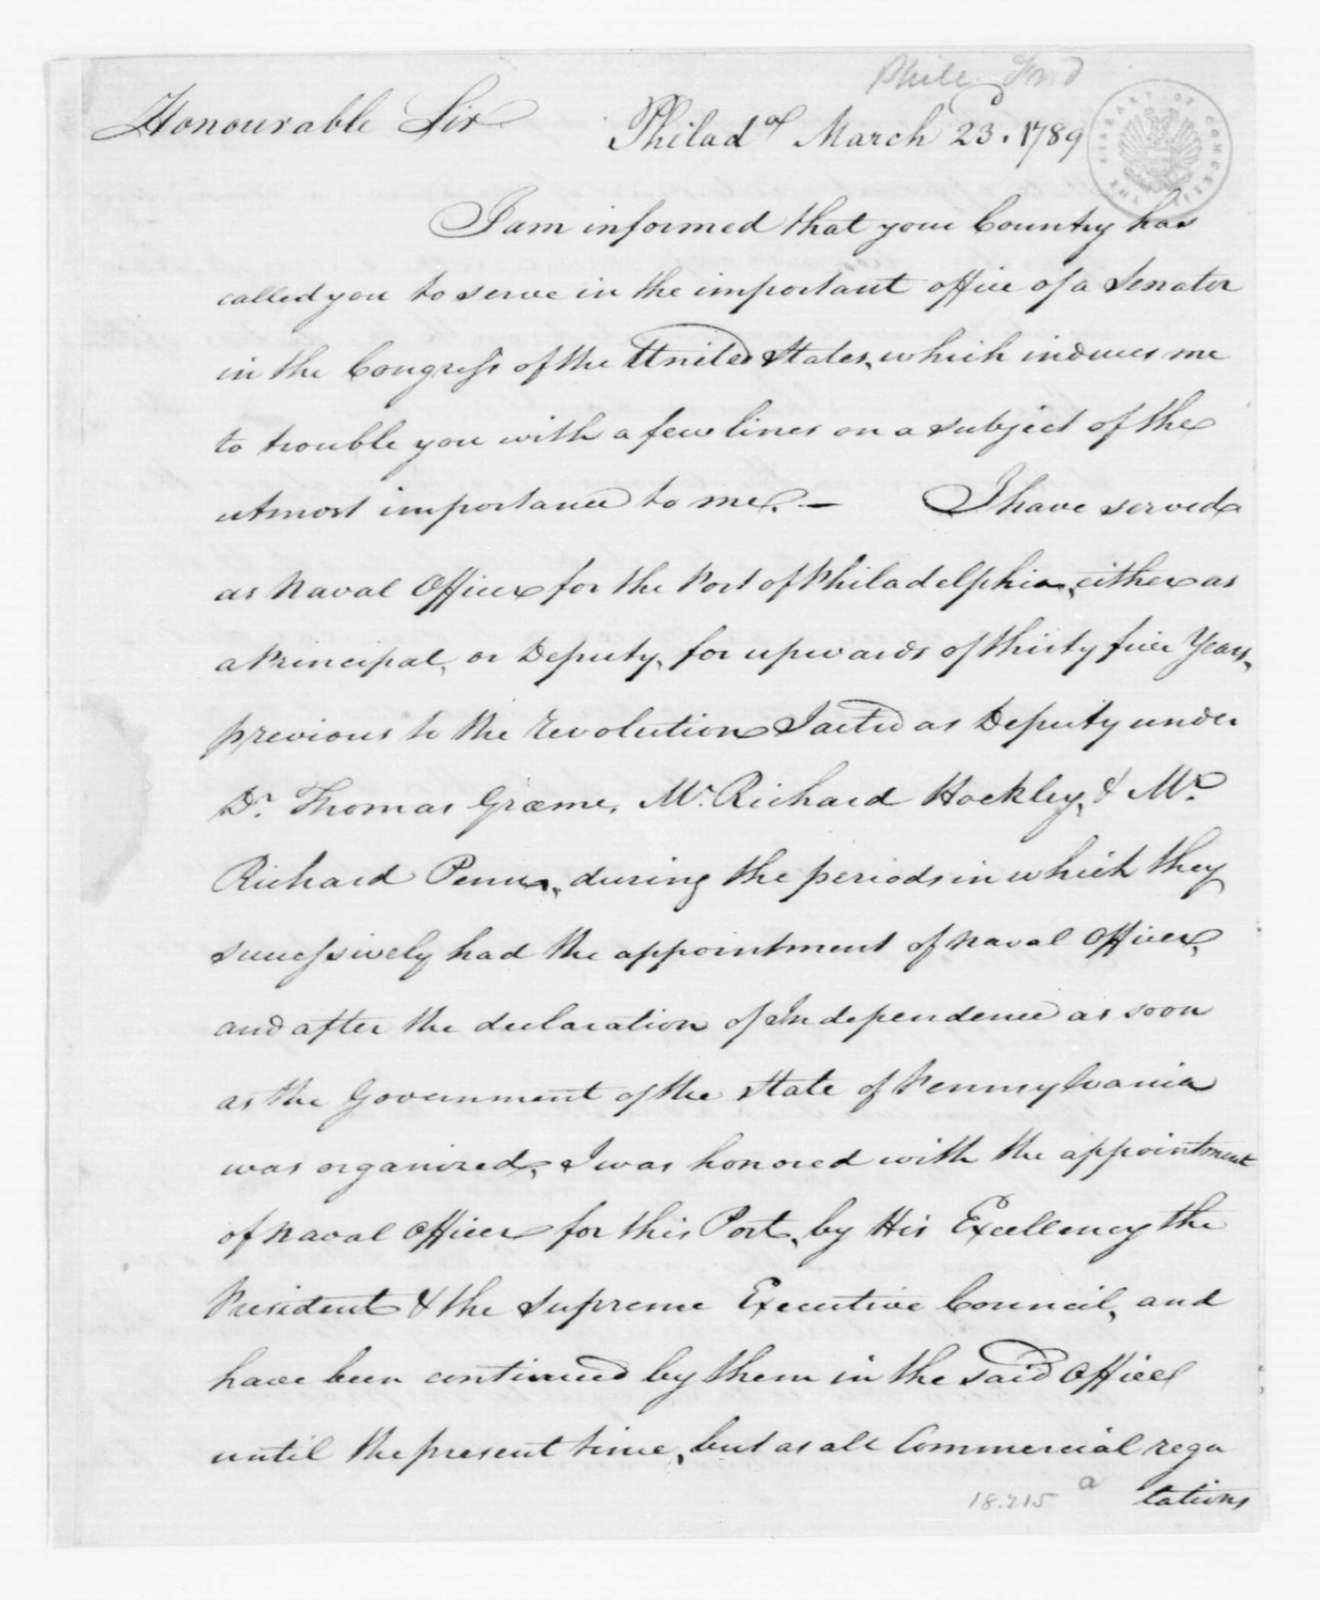 Frederick Phile to John Henry, March 23, 1789.